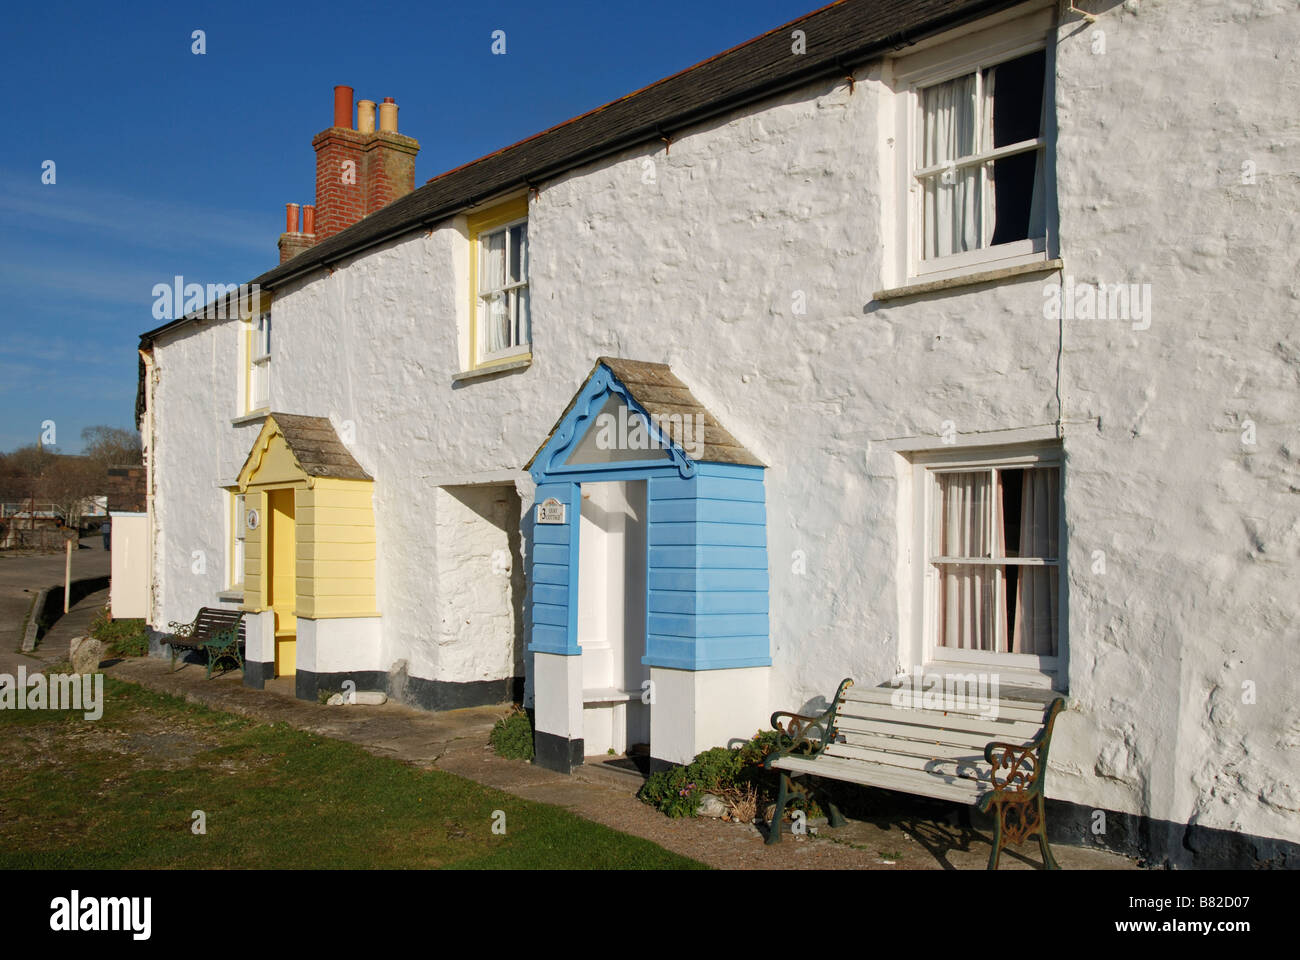 traditional fishermens cottages at charlestown,cornwall,uk - Stock Image